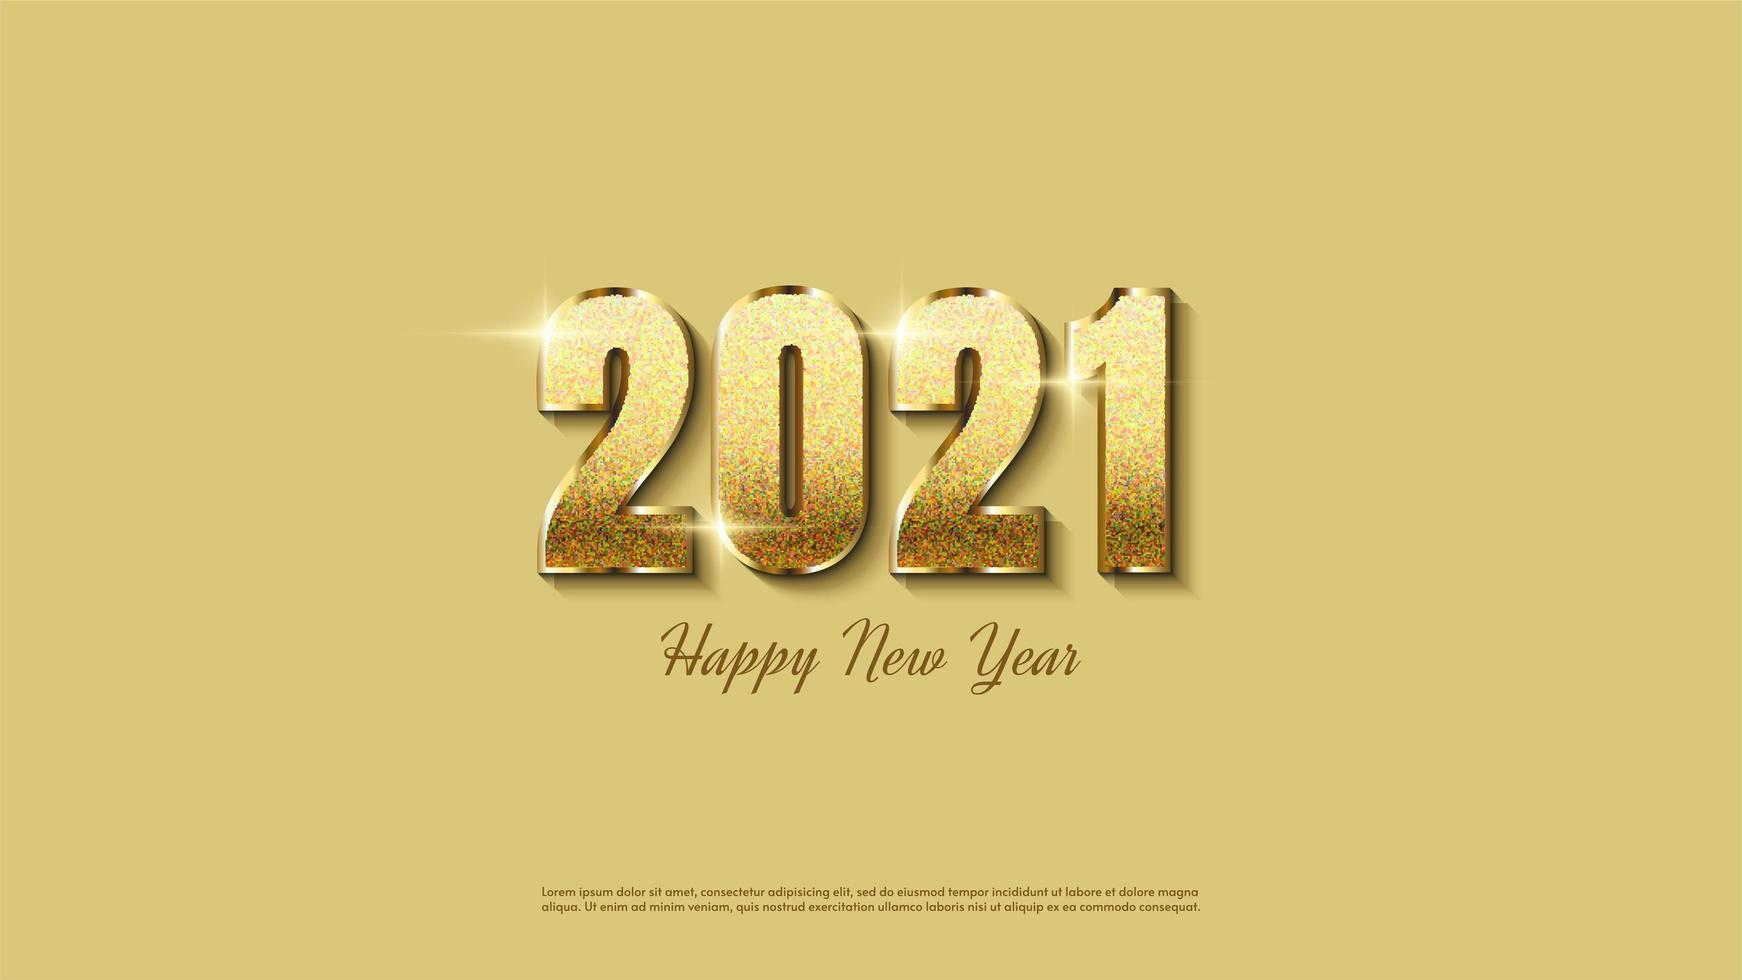 Background 2022 with Luminous Gold Glitter Download Free